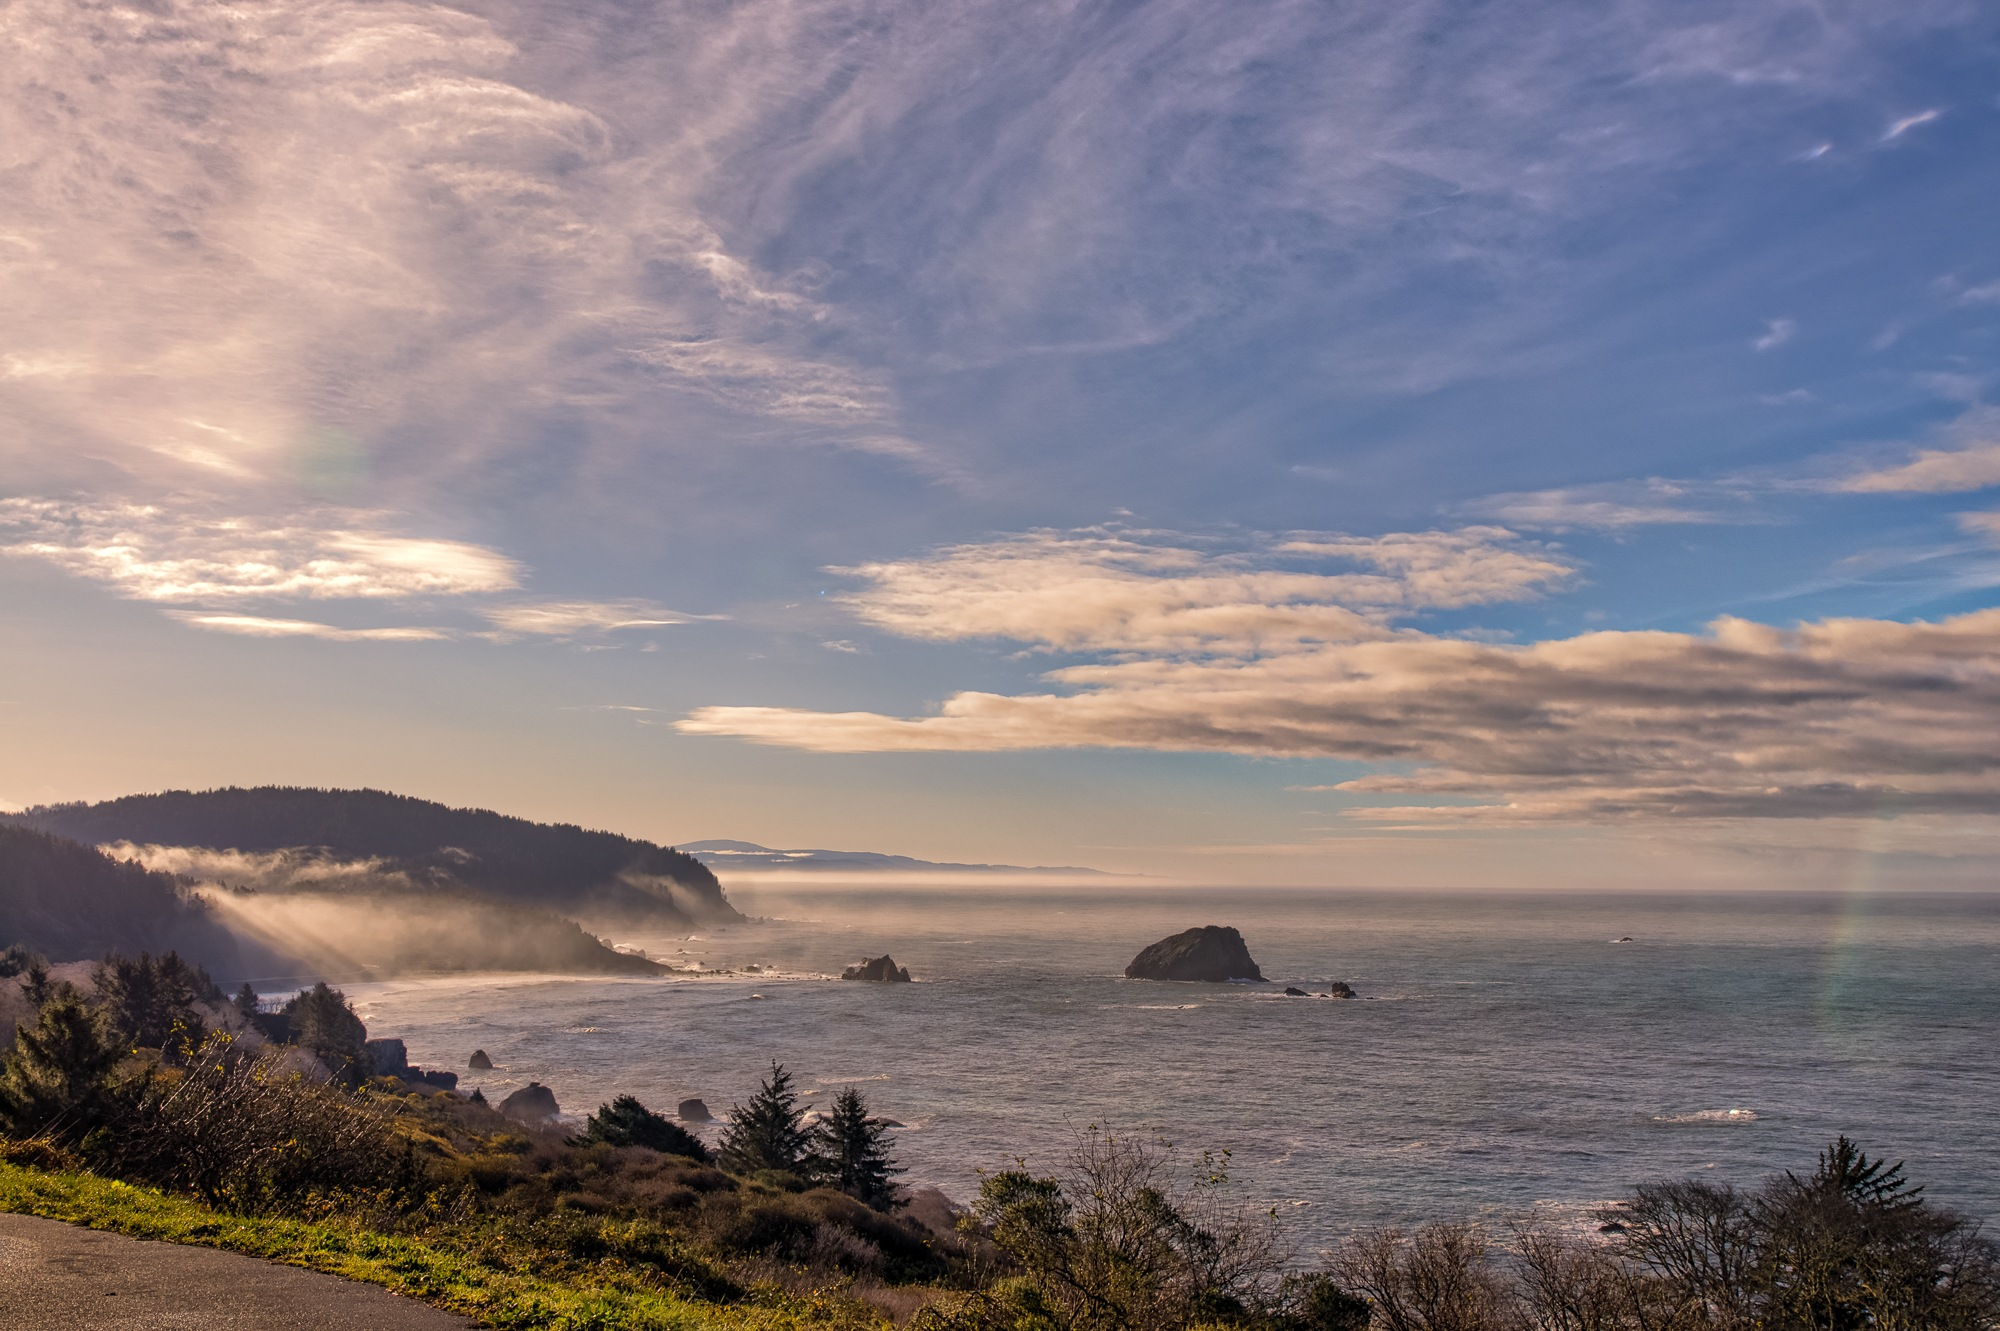 Sunrise on Highway 1 by David Weisbach